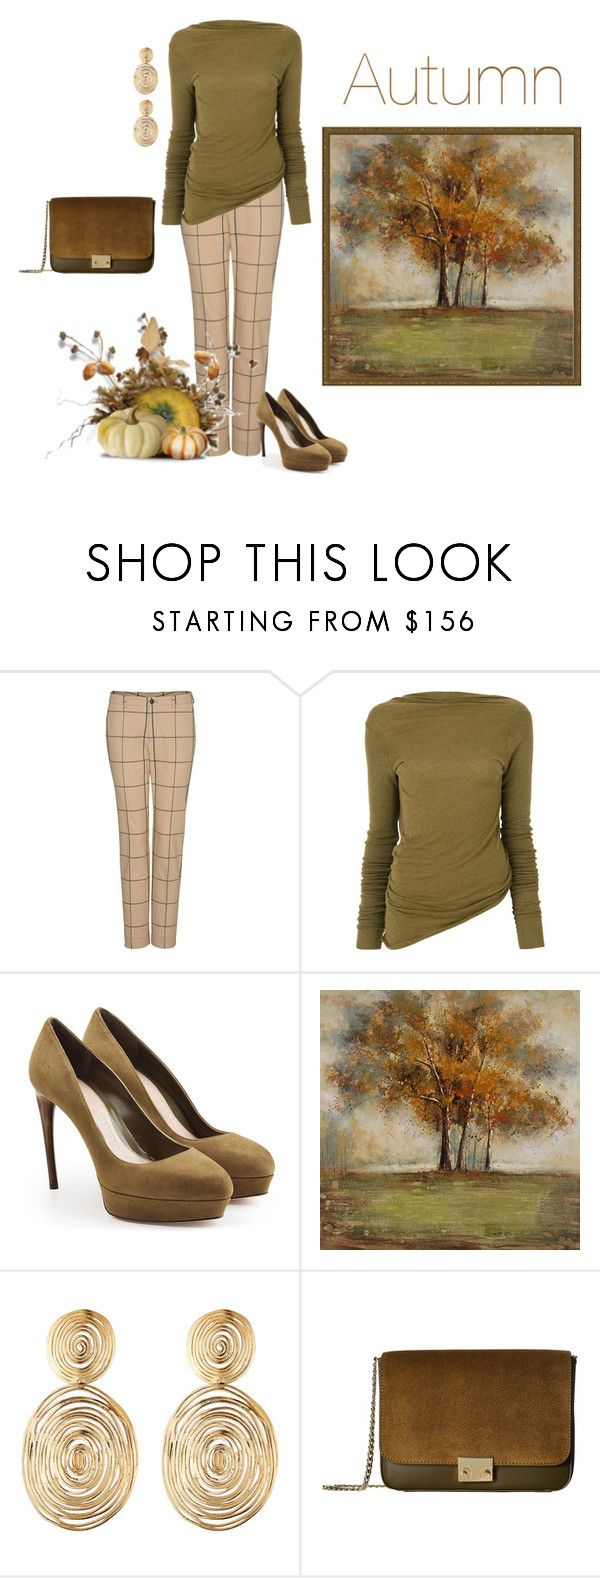 """""""Autumn 🍂"""" by jbeb ❤ liked on Polyvore featuring Rick Owens, Alexander McQueen, Home Decorators Collection, Gas Bijoux and Loeffler Randall"""